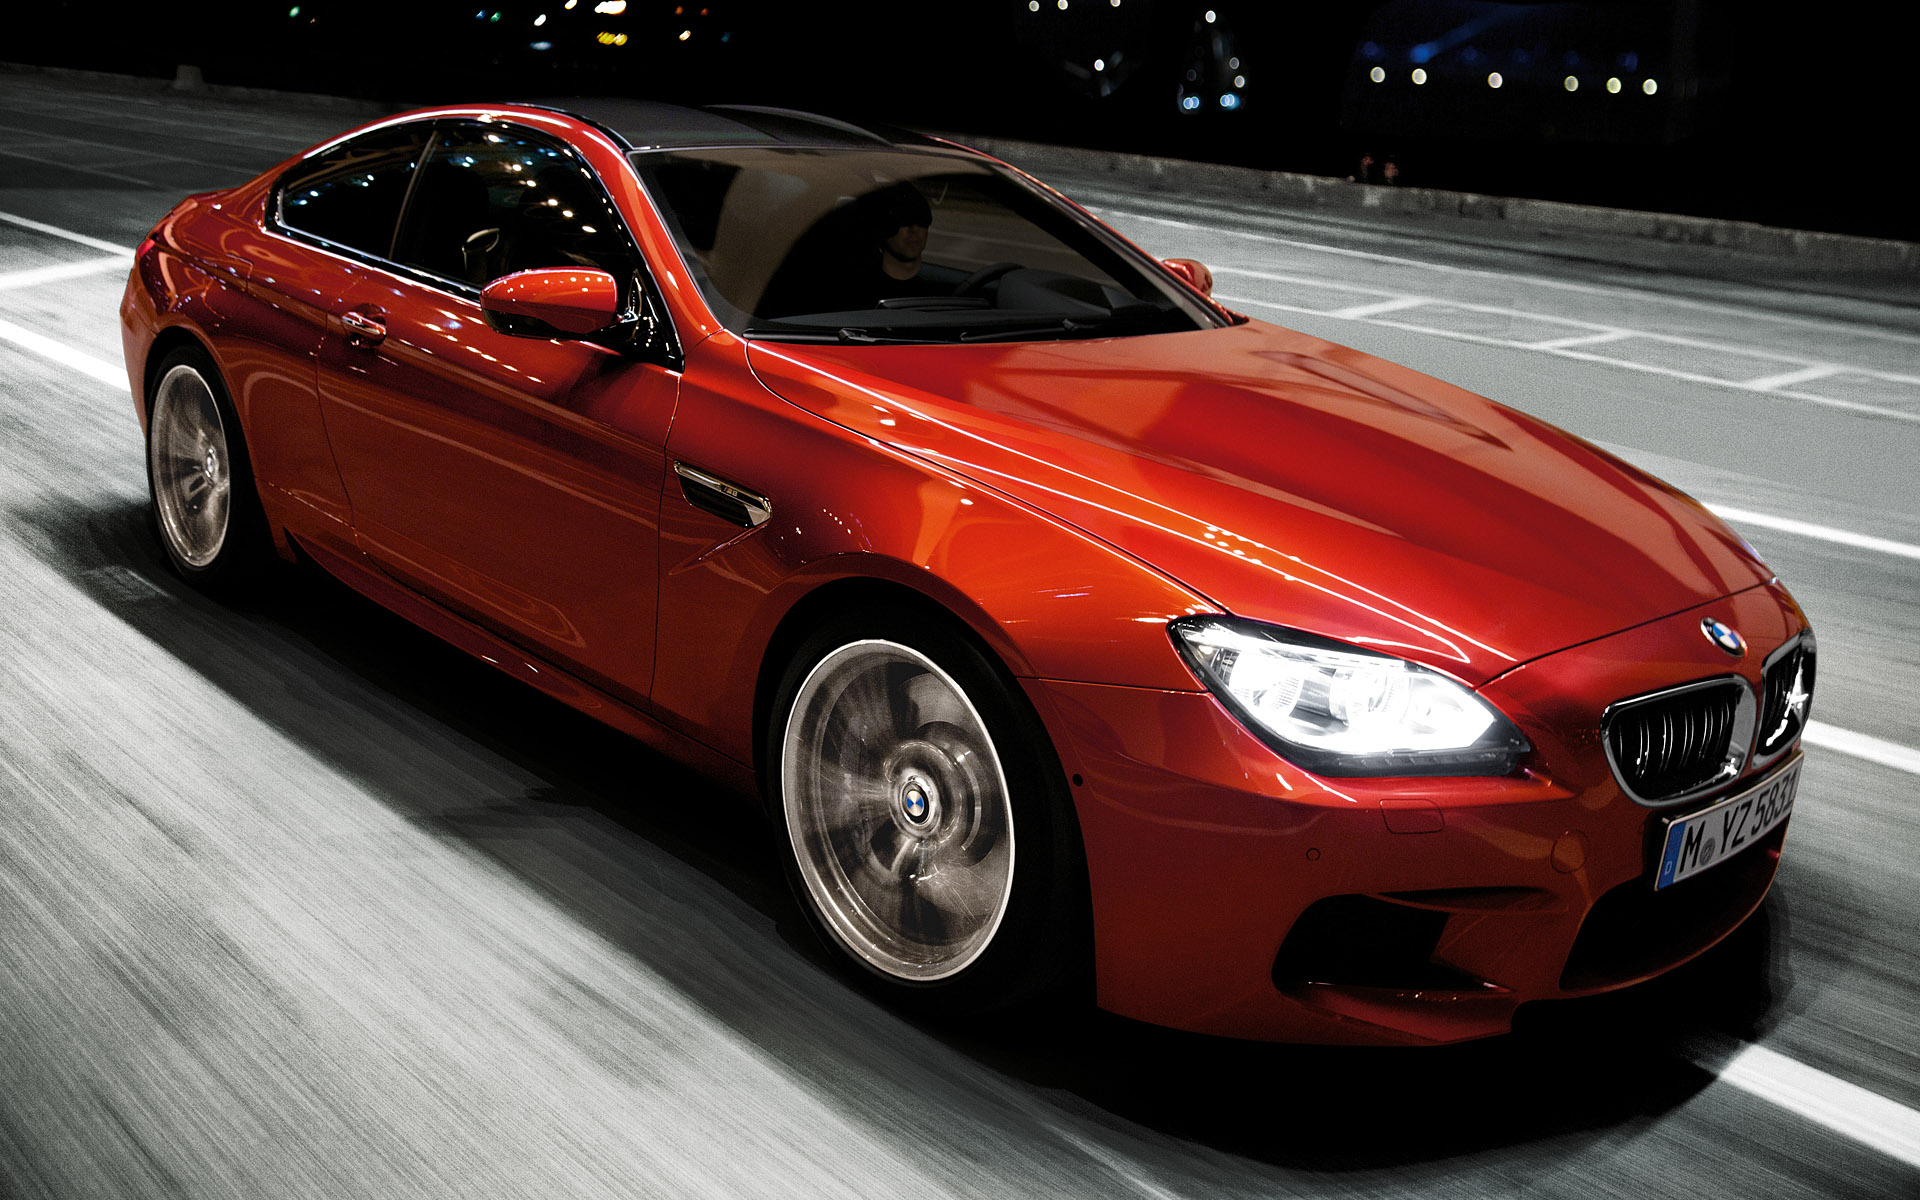 ... at 20-28% Higher Than F10 M5 - 6Post.com | BMW 6-Series Forum